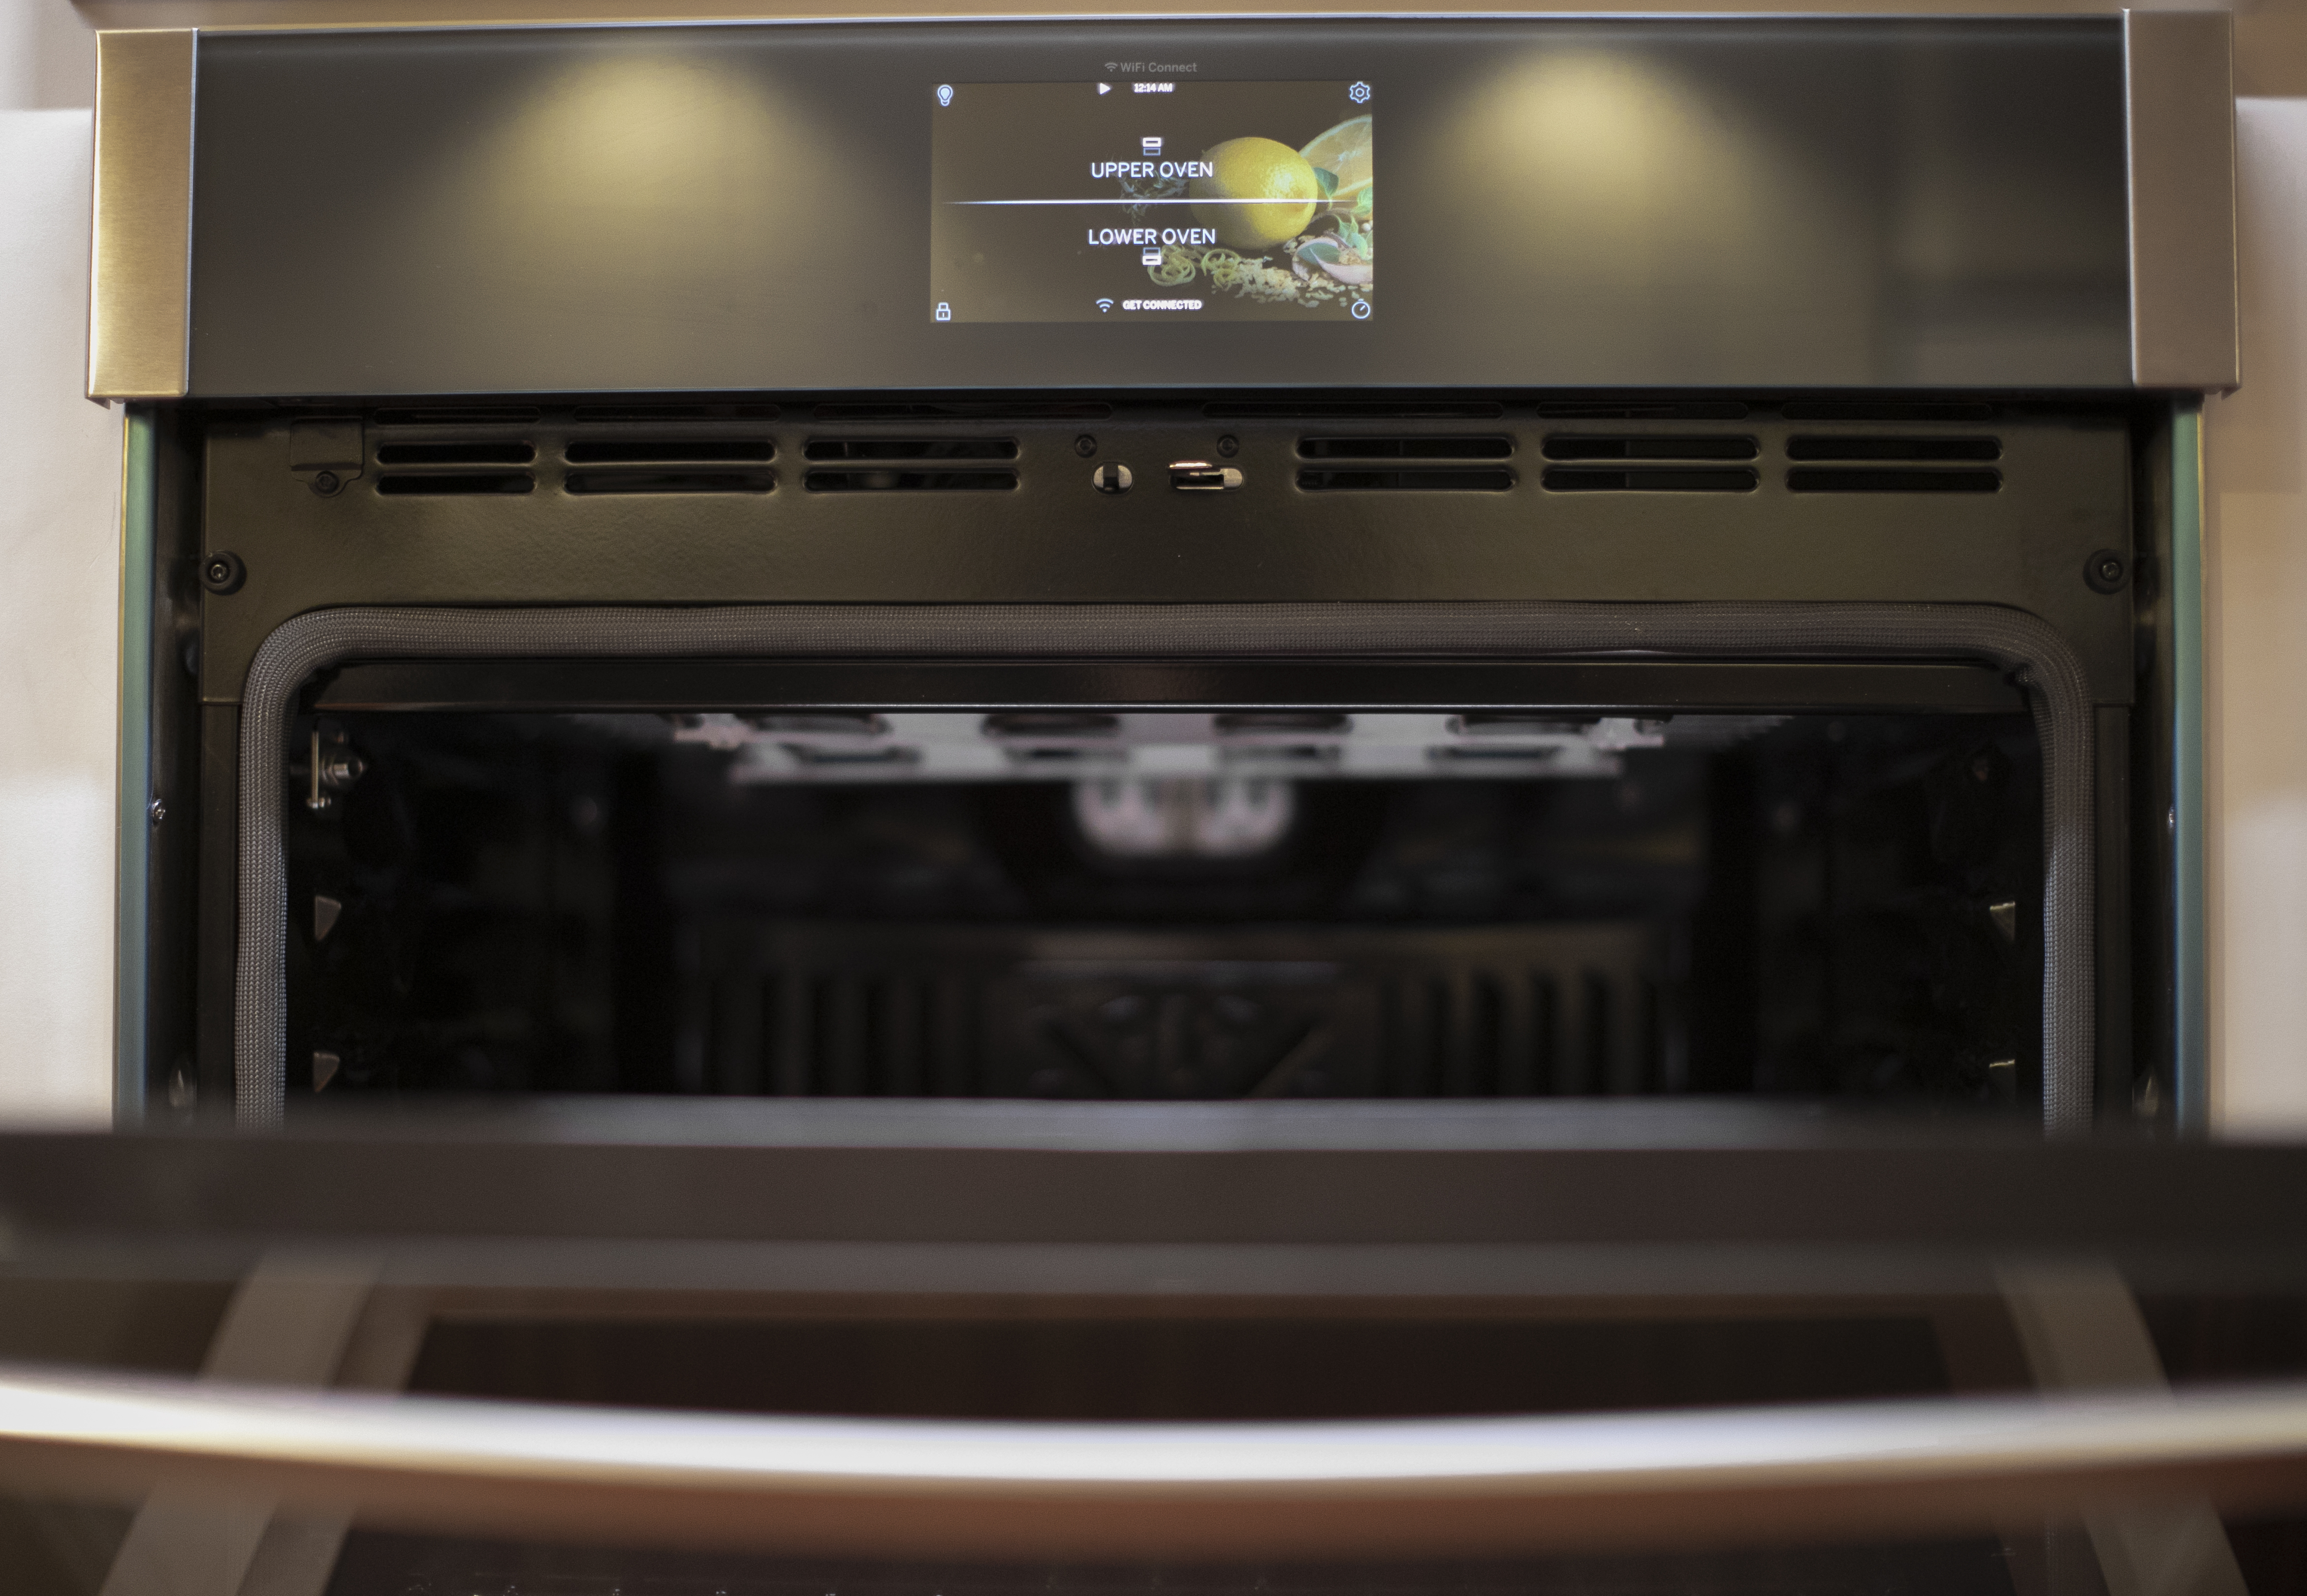 Ge Appliances Launches The Air Fry Technology In New Wall